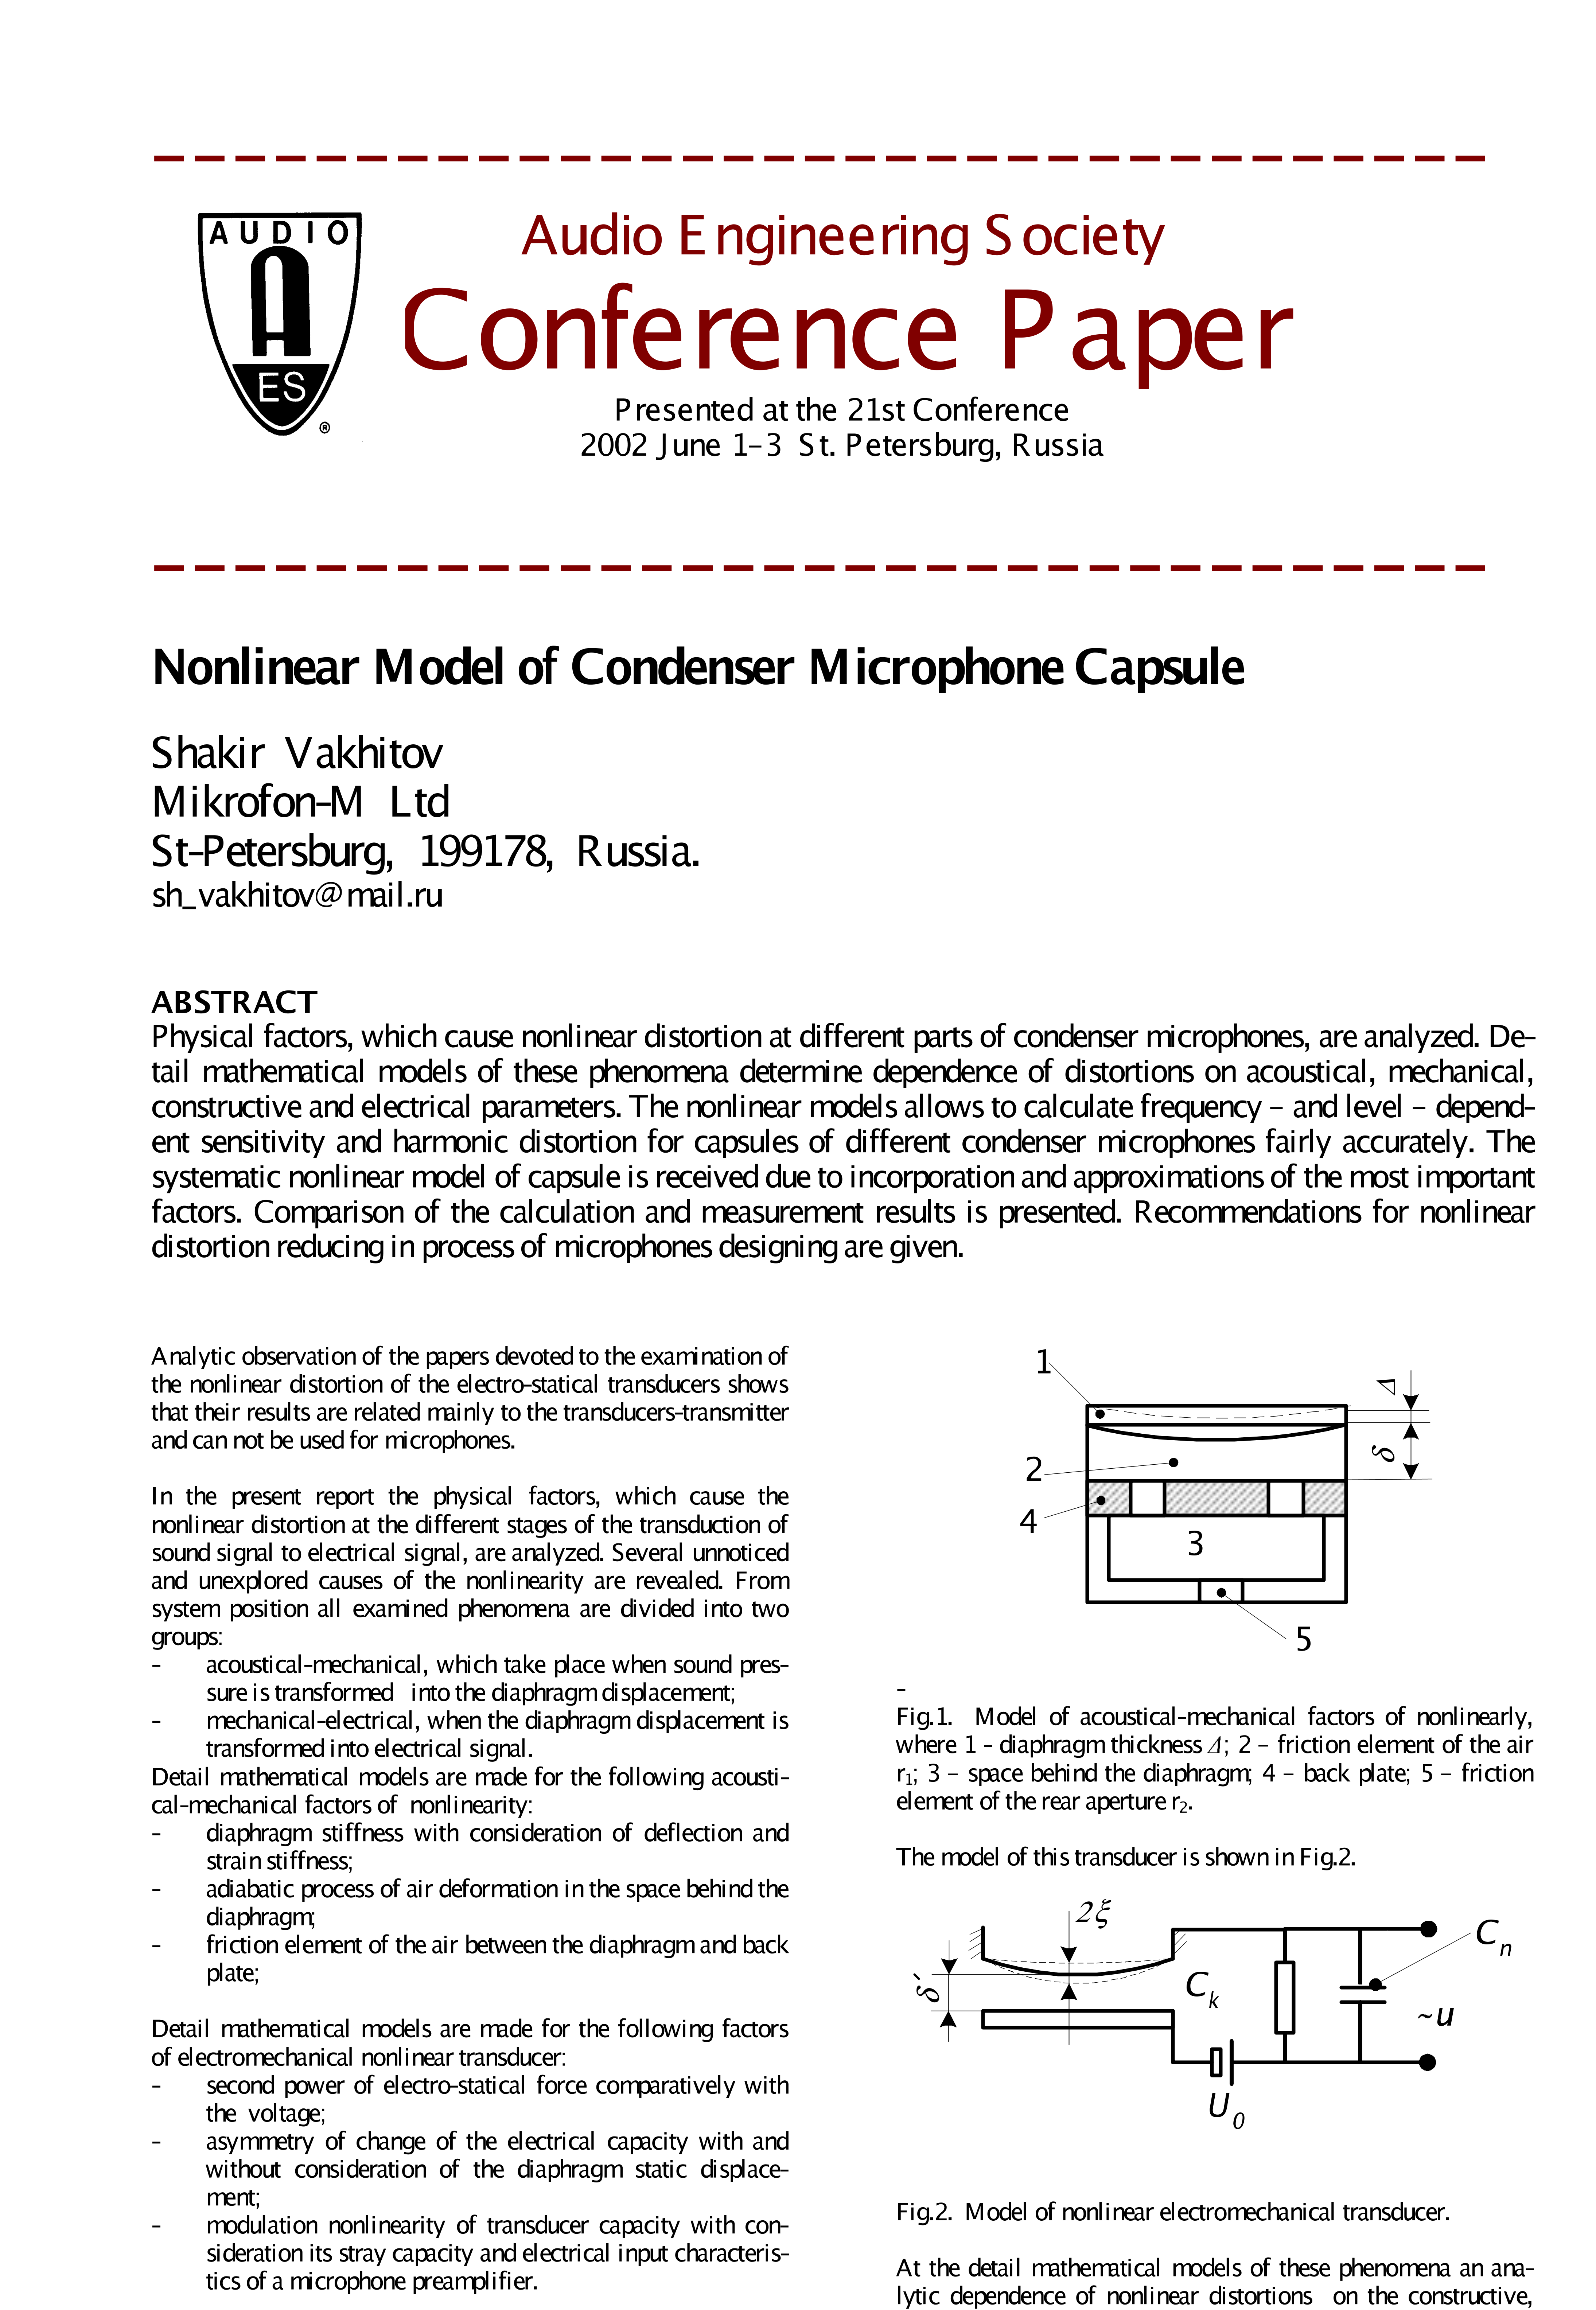 Aes E Library Nonlinear Model Of Condenser Microphone Capsule Diagram